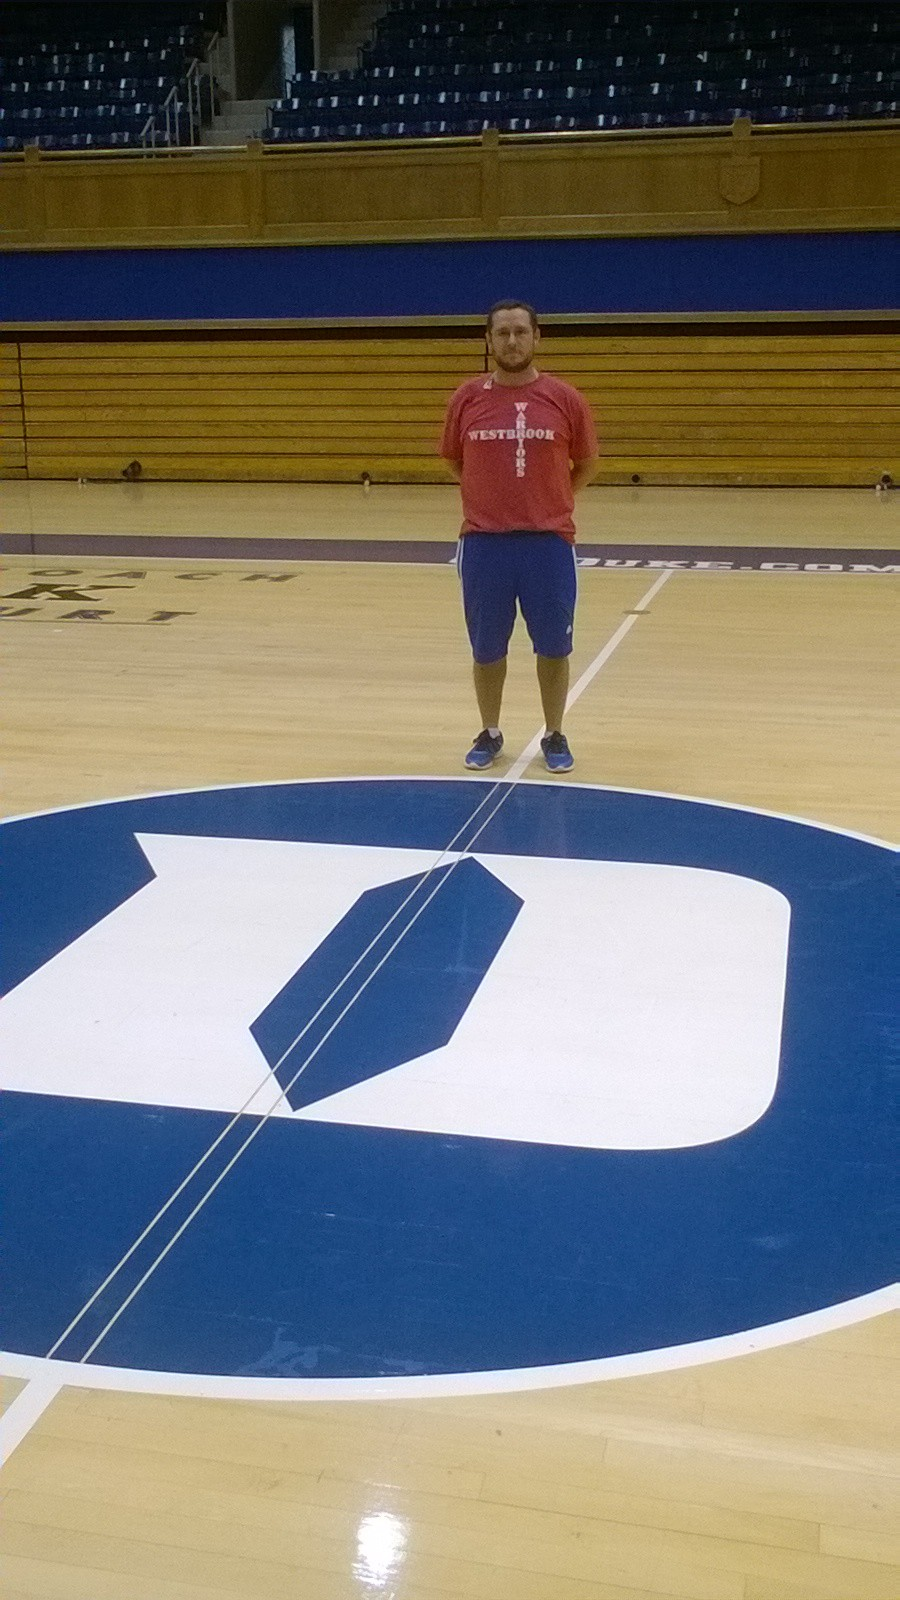 Standing at mid-court inside Cameron Indoor Stadium, a must for any Duke basketball fan to visit